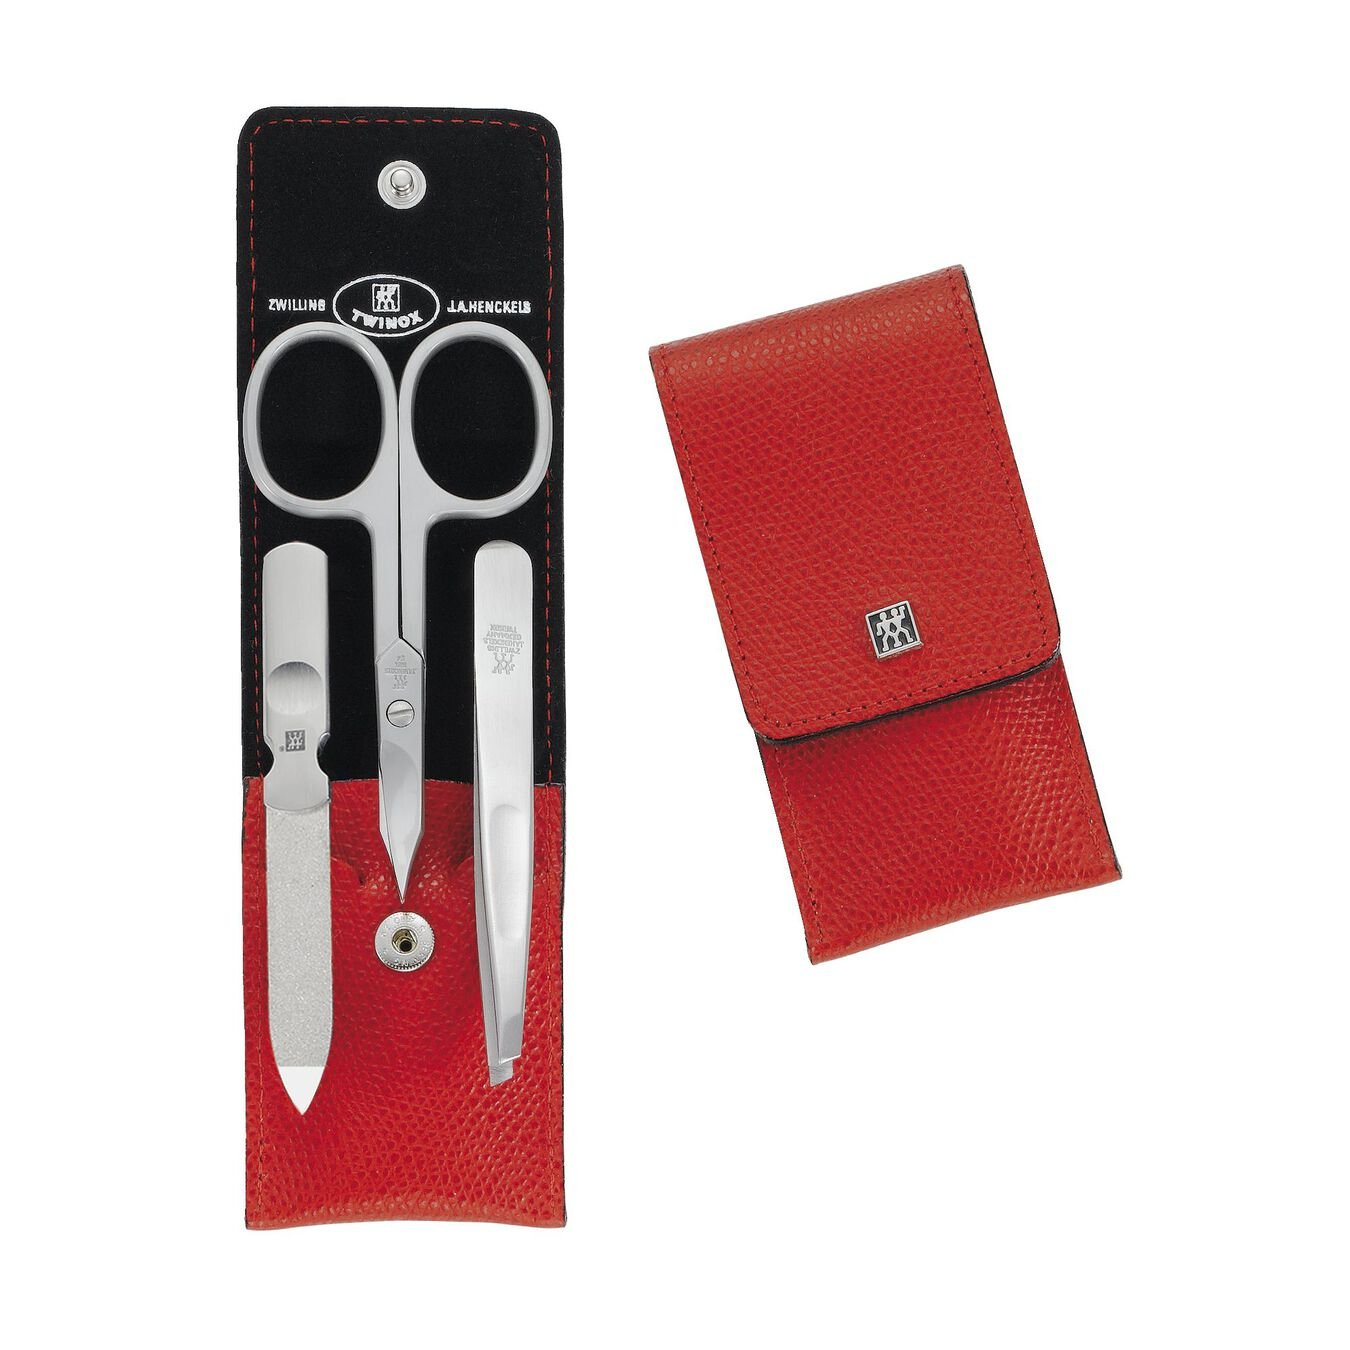 Snap fastener case, 3 Piece   special formula steel   red,,large 1